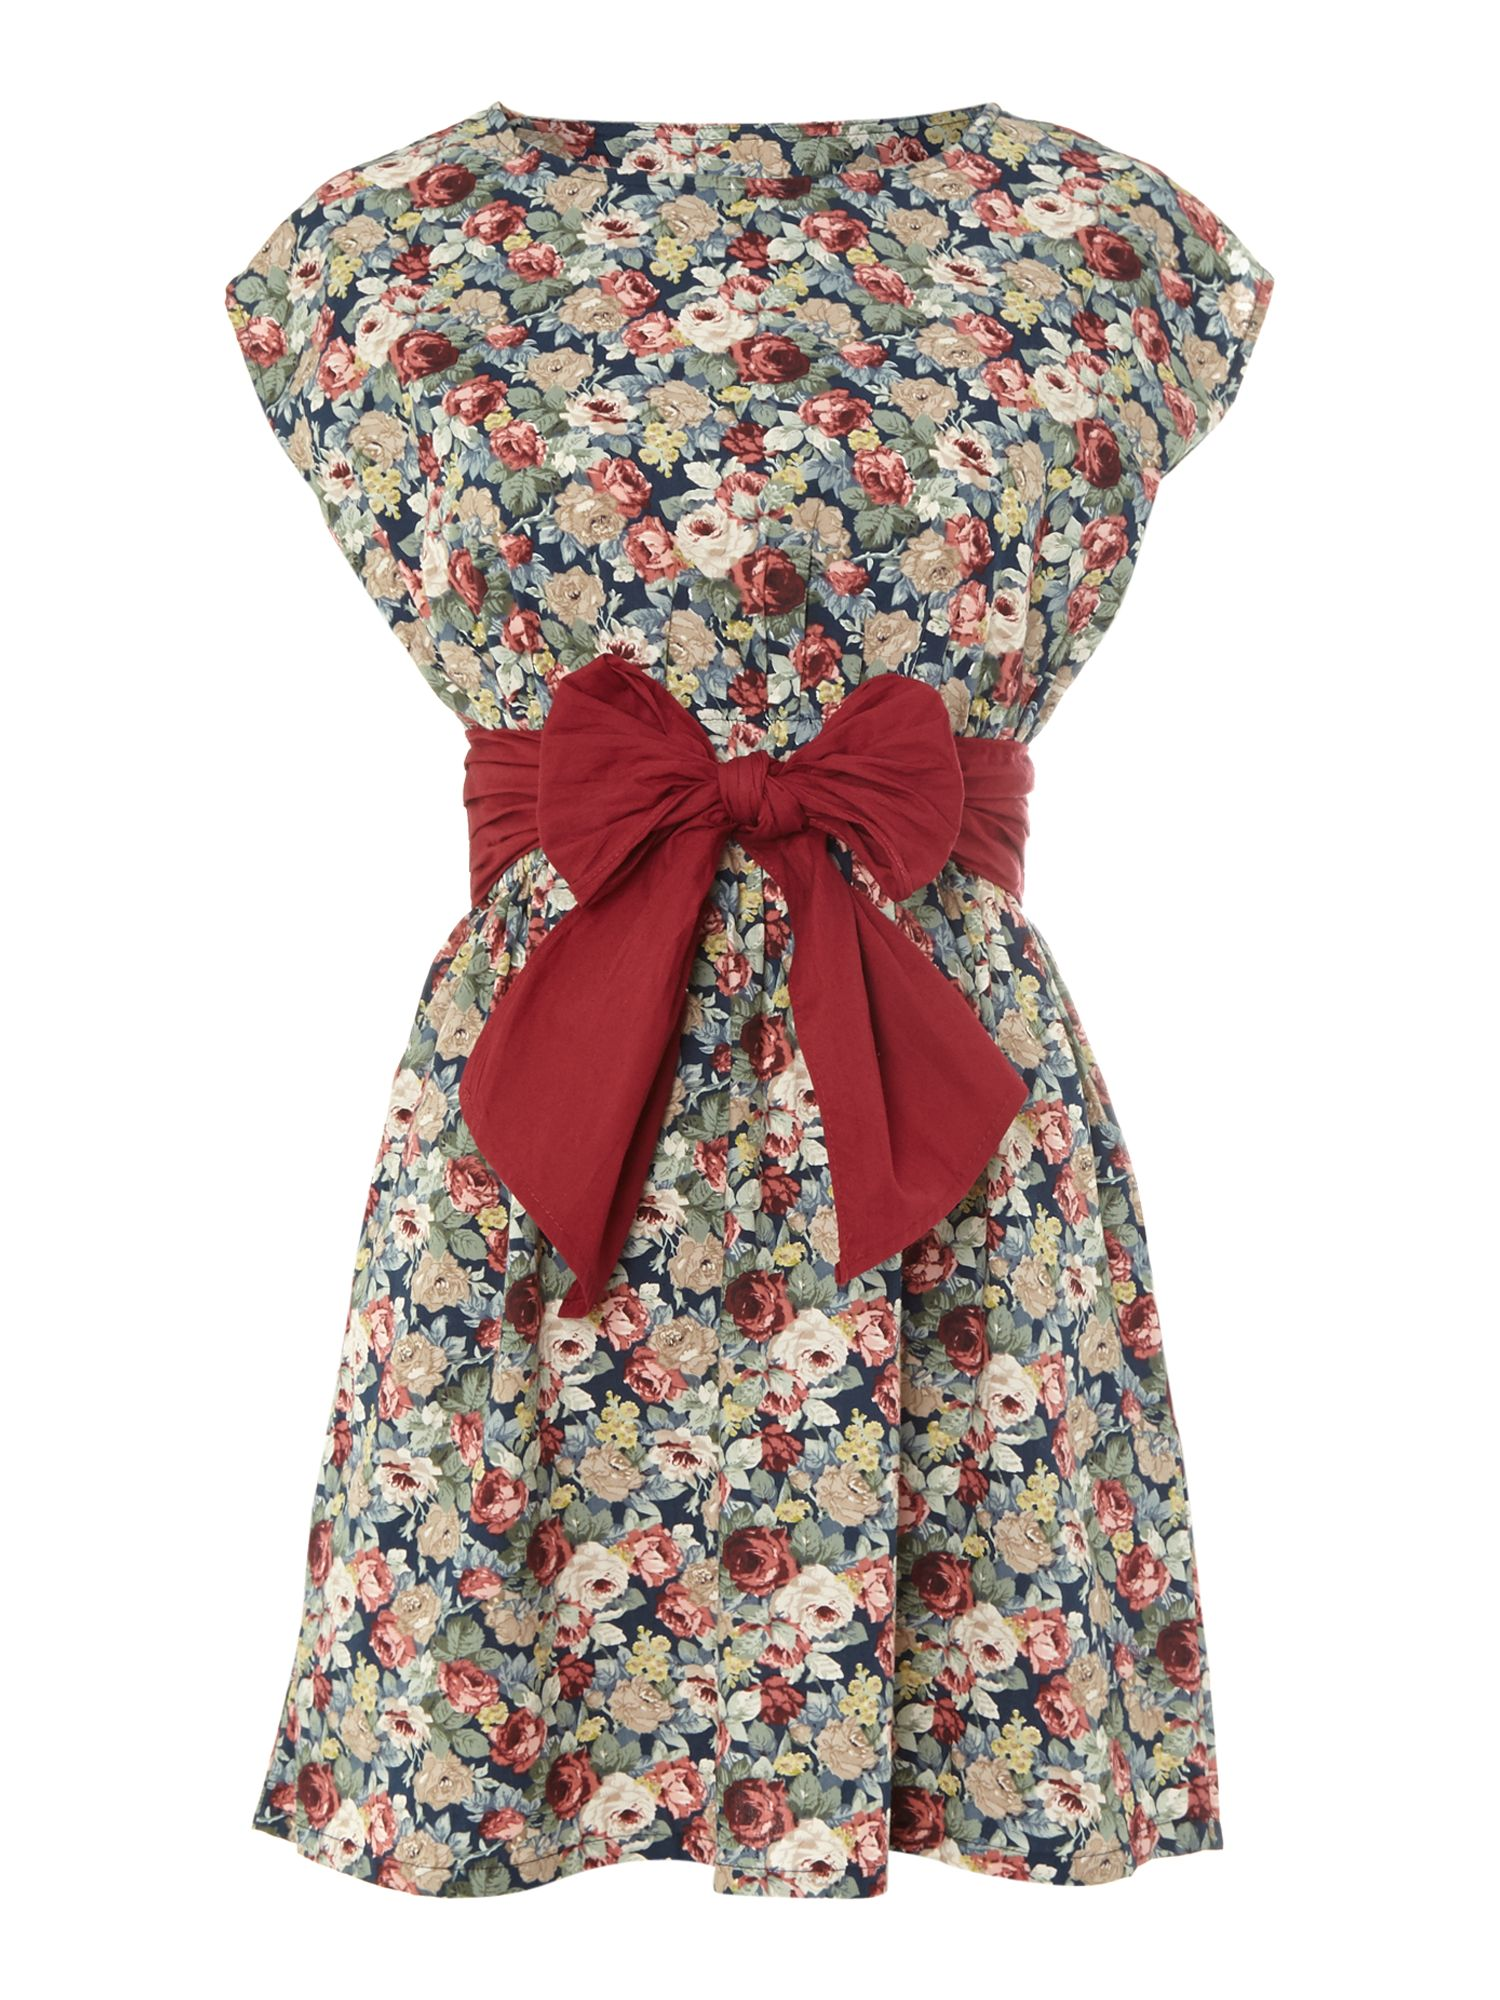 Floral print tunic with front bow